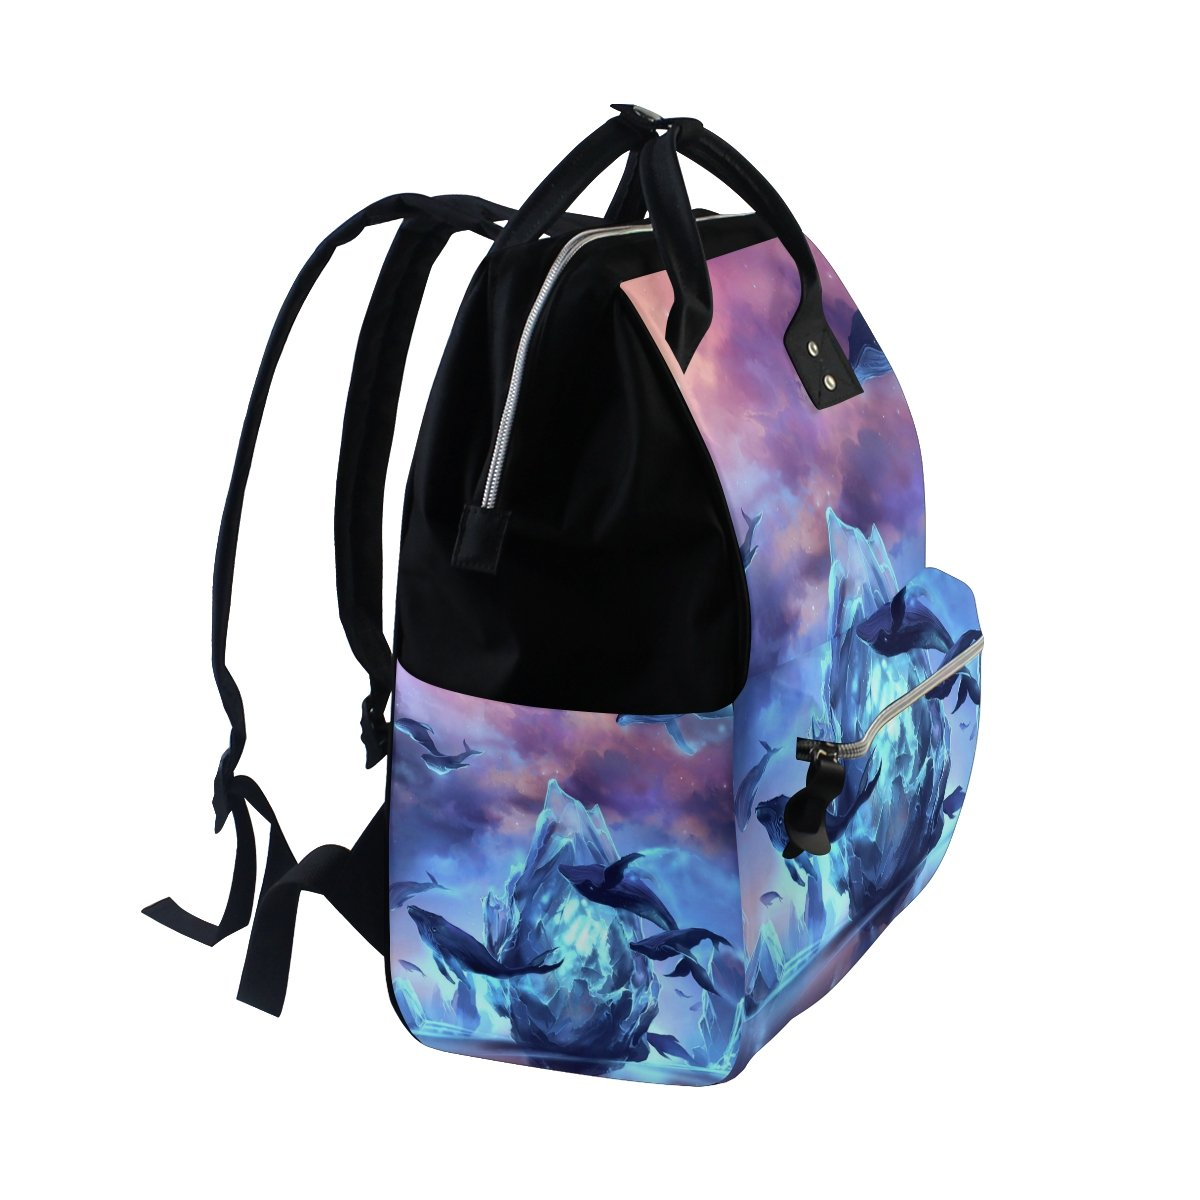 Diaper Bags Backpack Purse Mummy Backpack Fashion Mummy Maternity Nappy Bag Cool Cute Travel Backpack Laptop Backpack with Beautiful Whale Pattern Daypack for Women Girls Kids